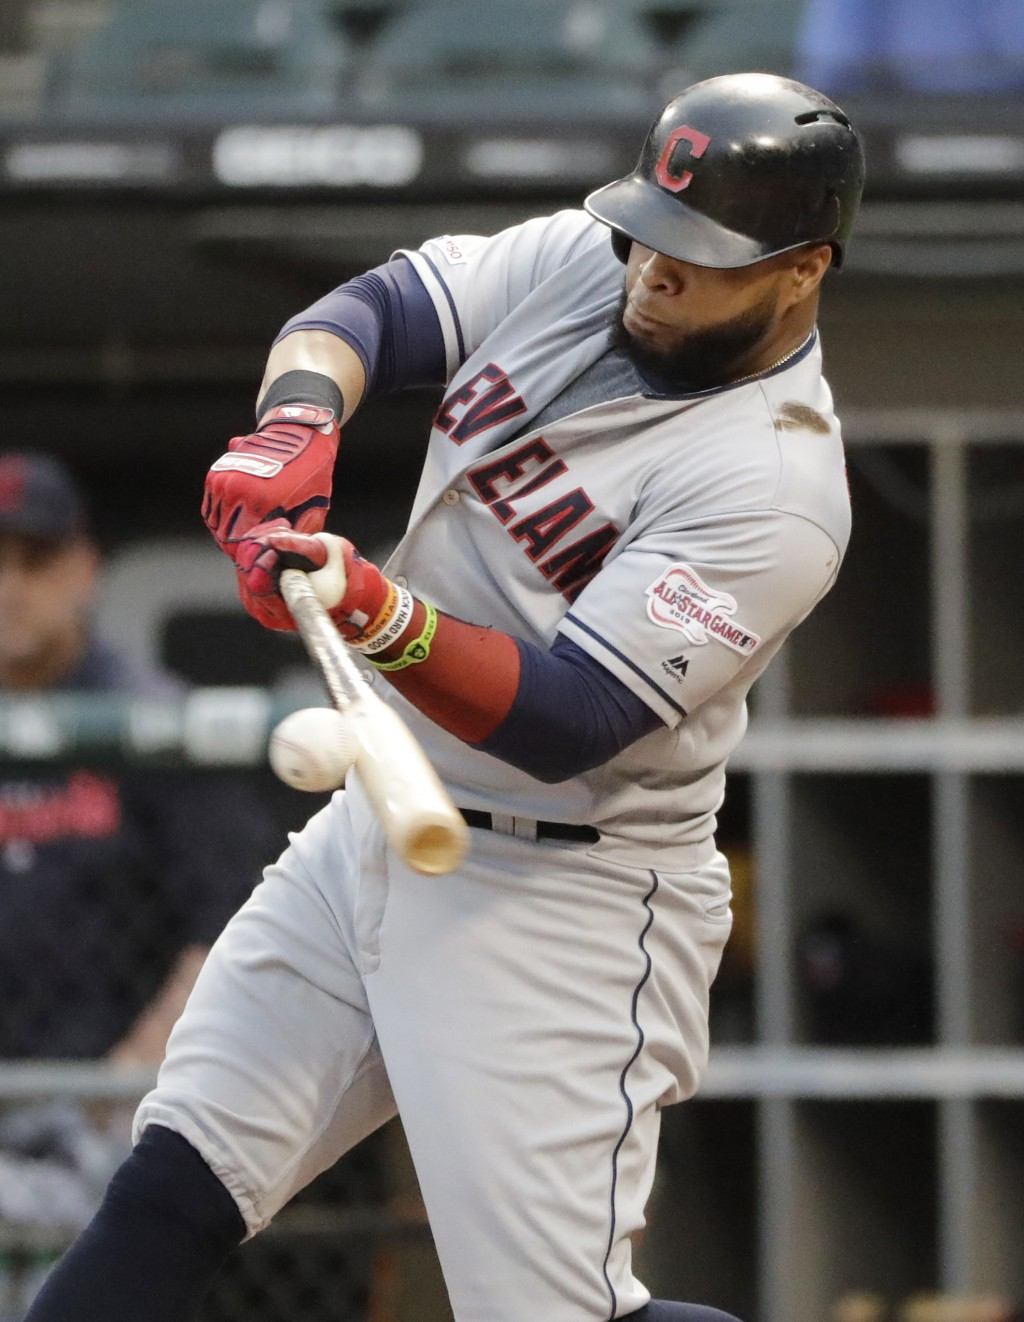 Cleveland Indians' Carlos Santana hits a single against the Chicago White Sox during the first inning of a baseball game in Chicago, Friday, May 31, 2